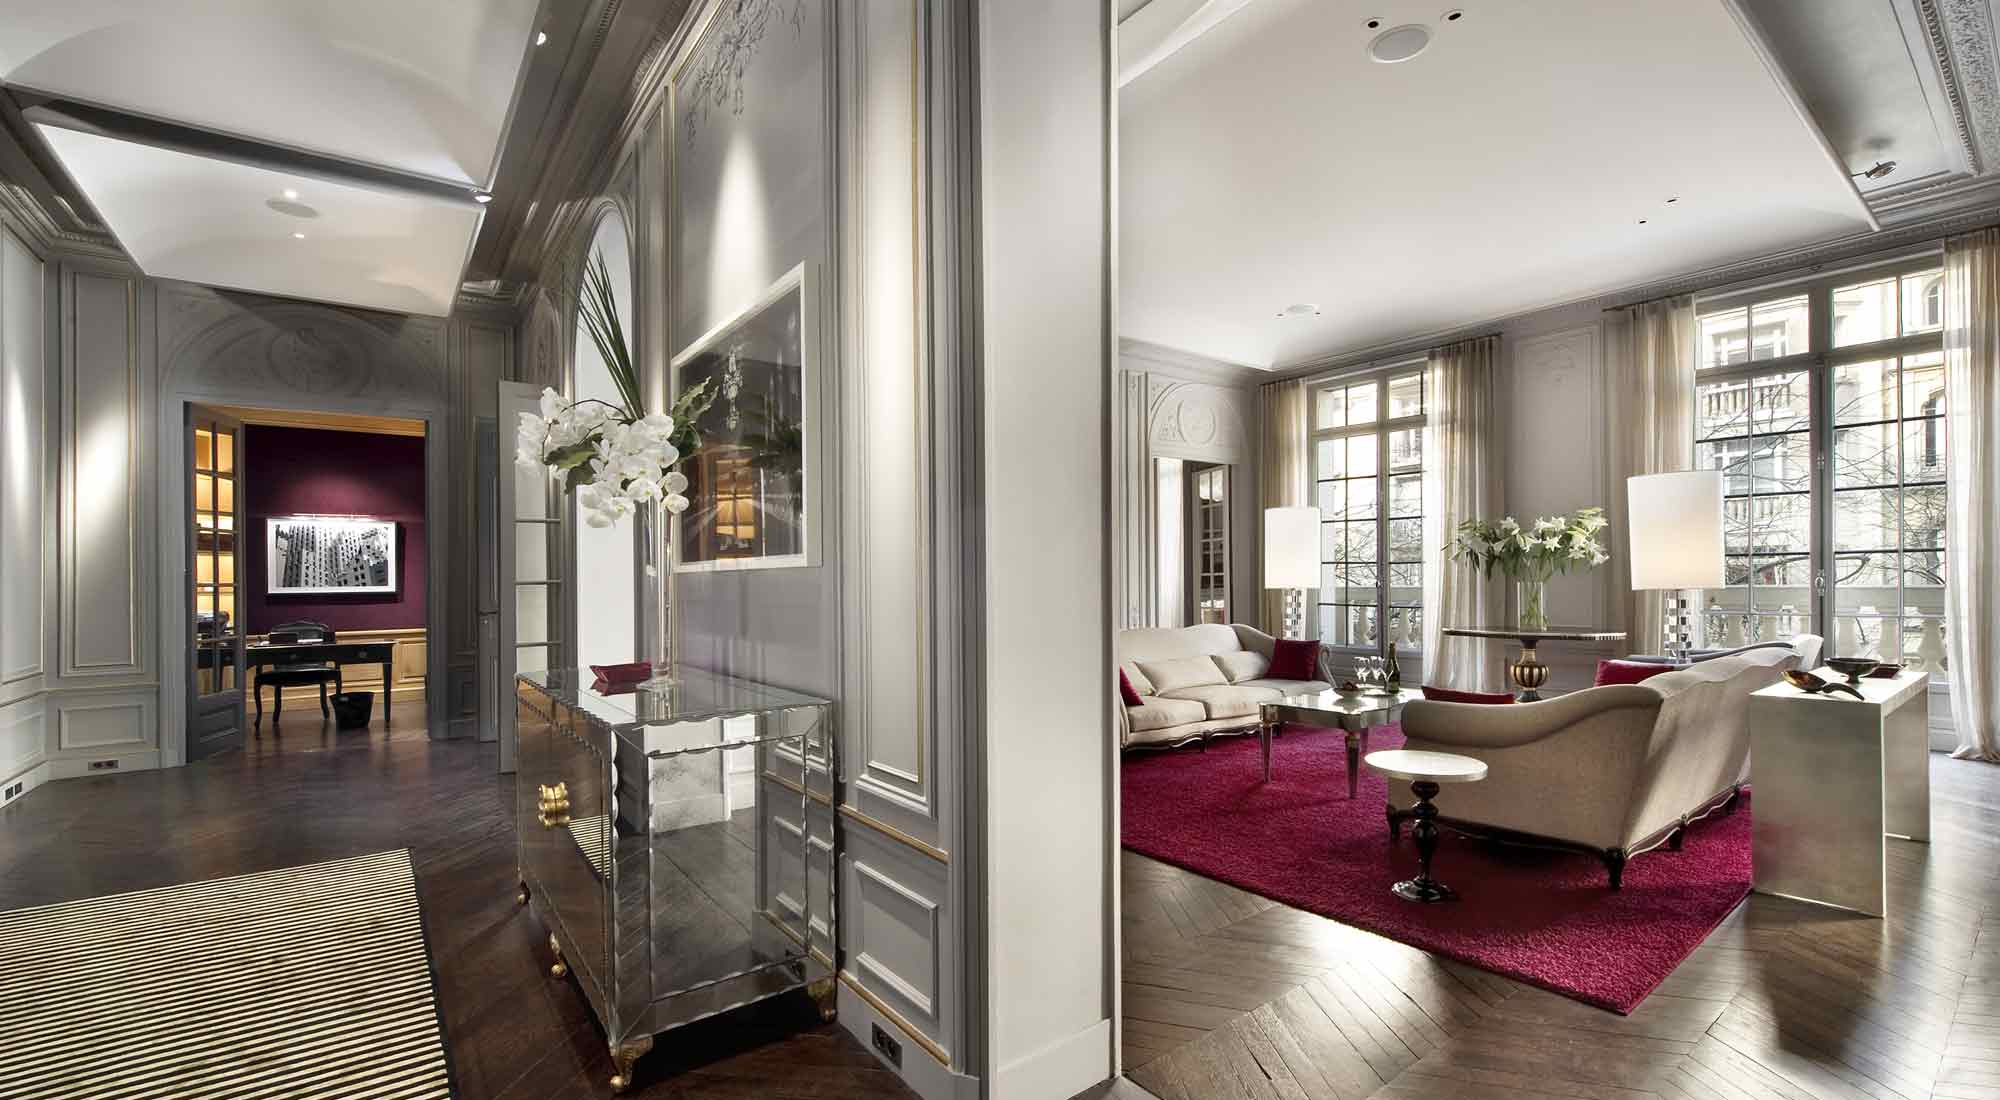 Paris luxury apartment for rent 16th casol villas france for Appart hotel 5eme arrondissement paris